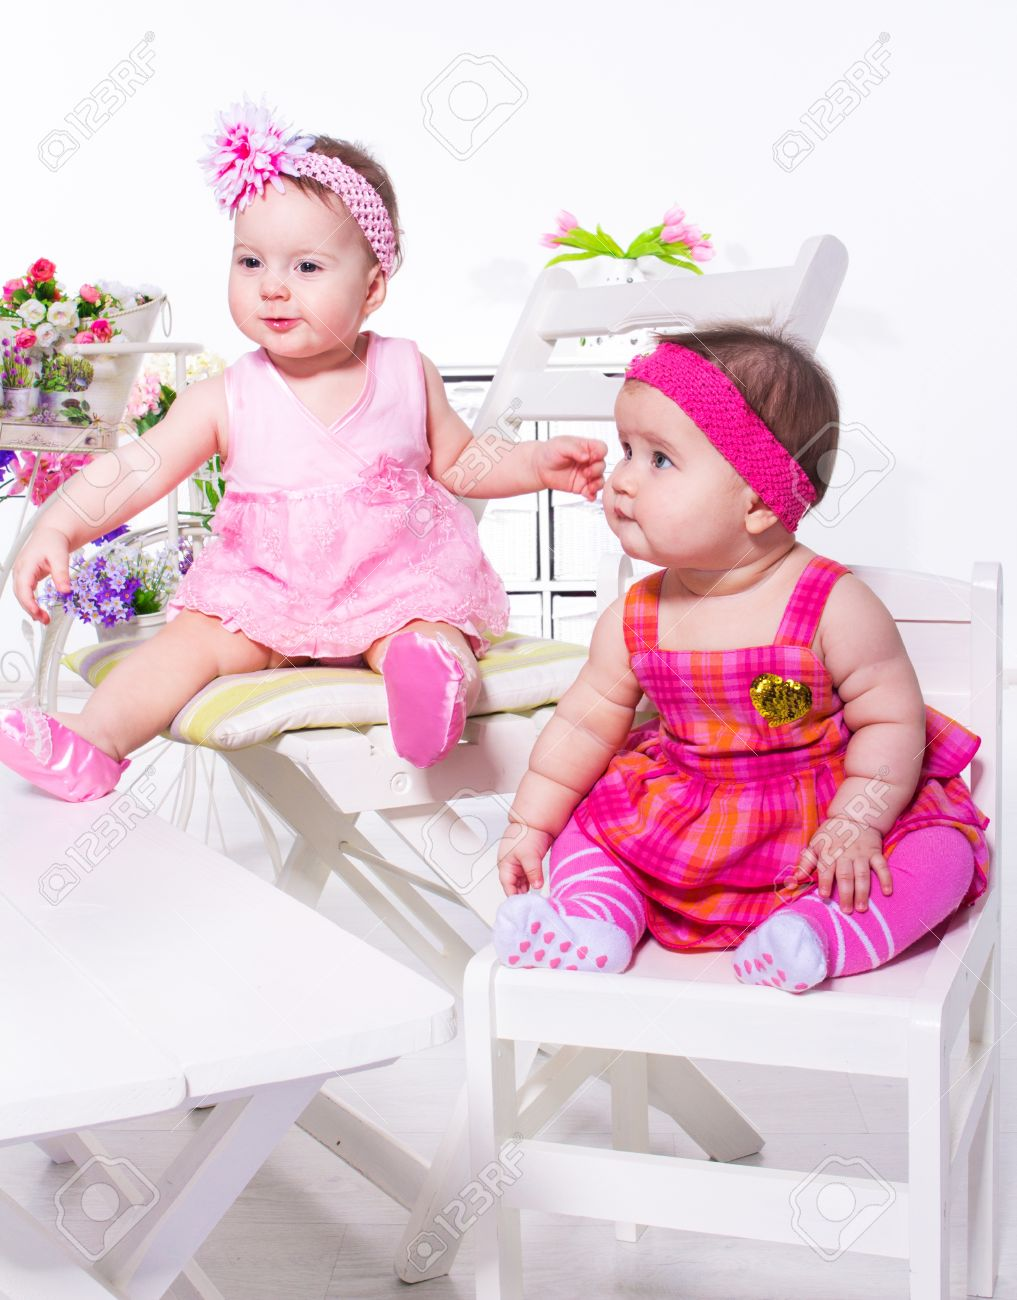 two cute baby friends sitting stock photo, picture and royalty free